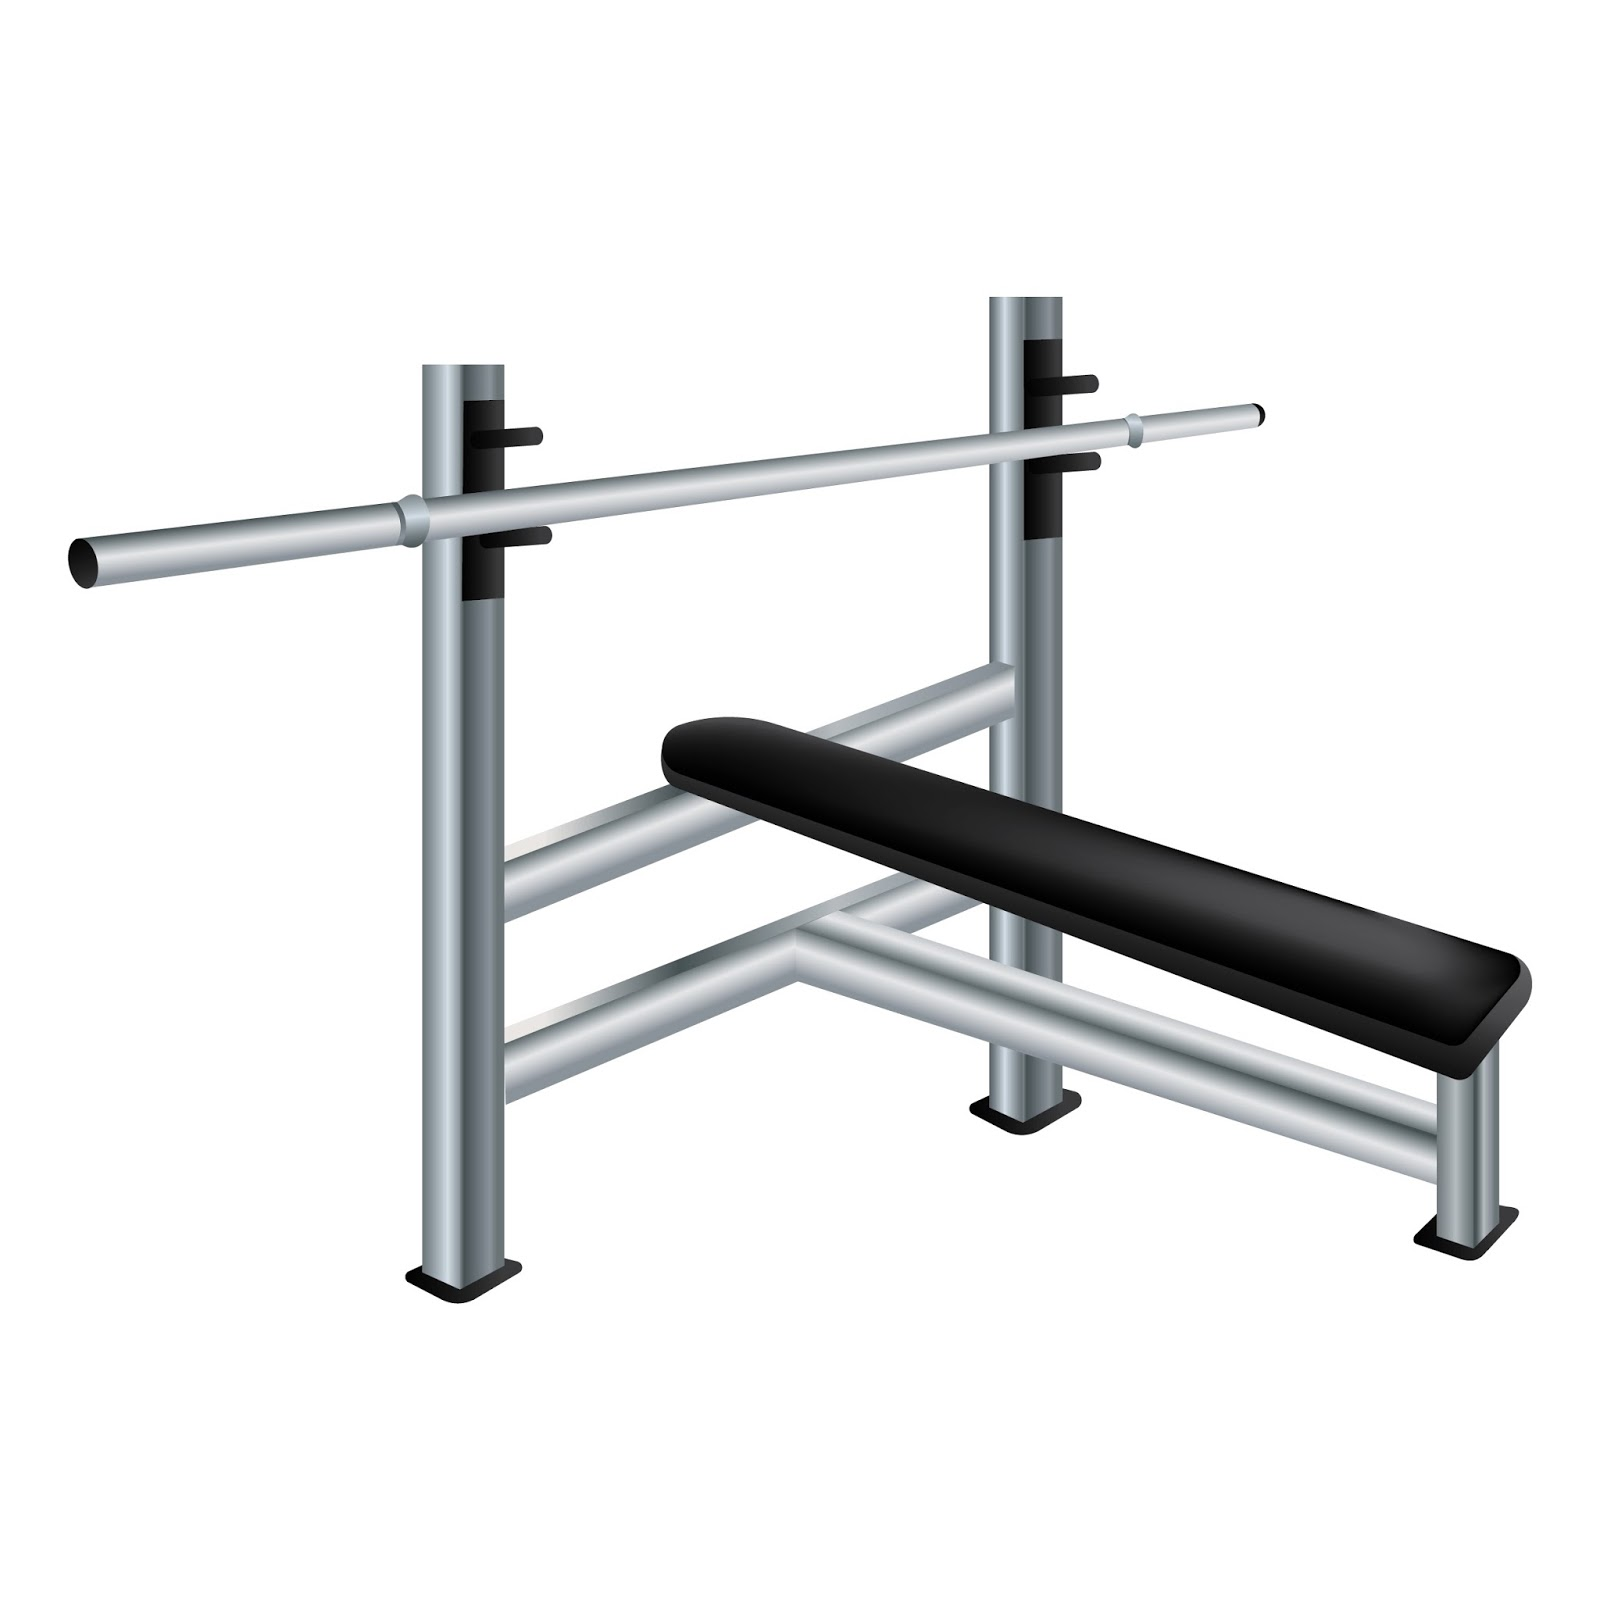 Andrew Heming 39 S Blog The Truth About The Bench Press